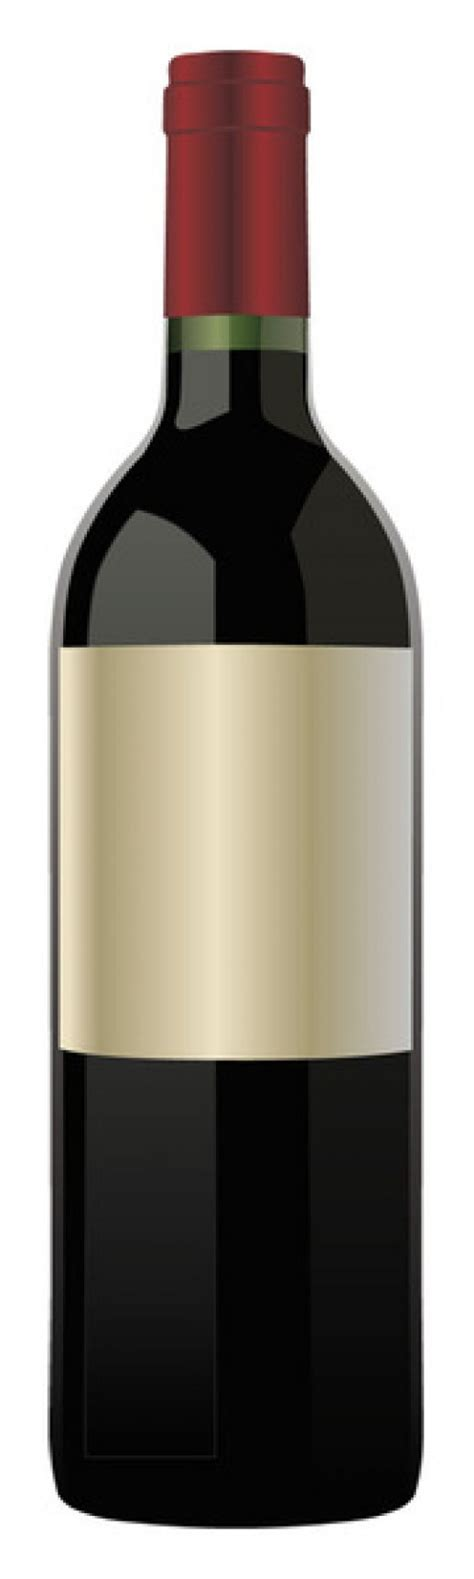 wine bottle svg wine vector 73 free wine graphics download